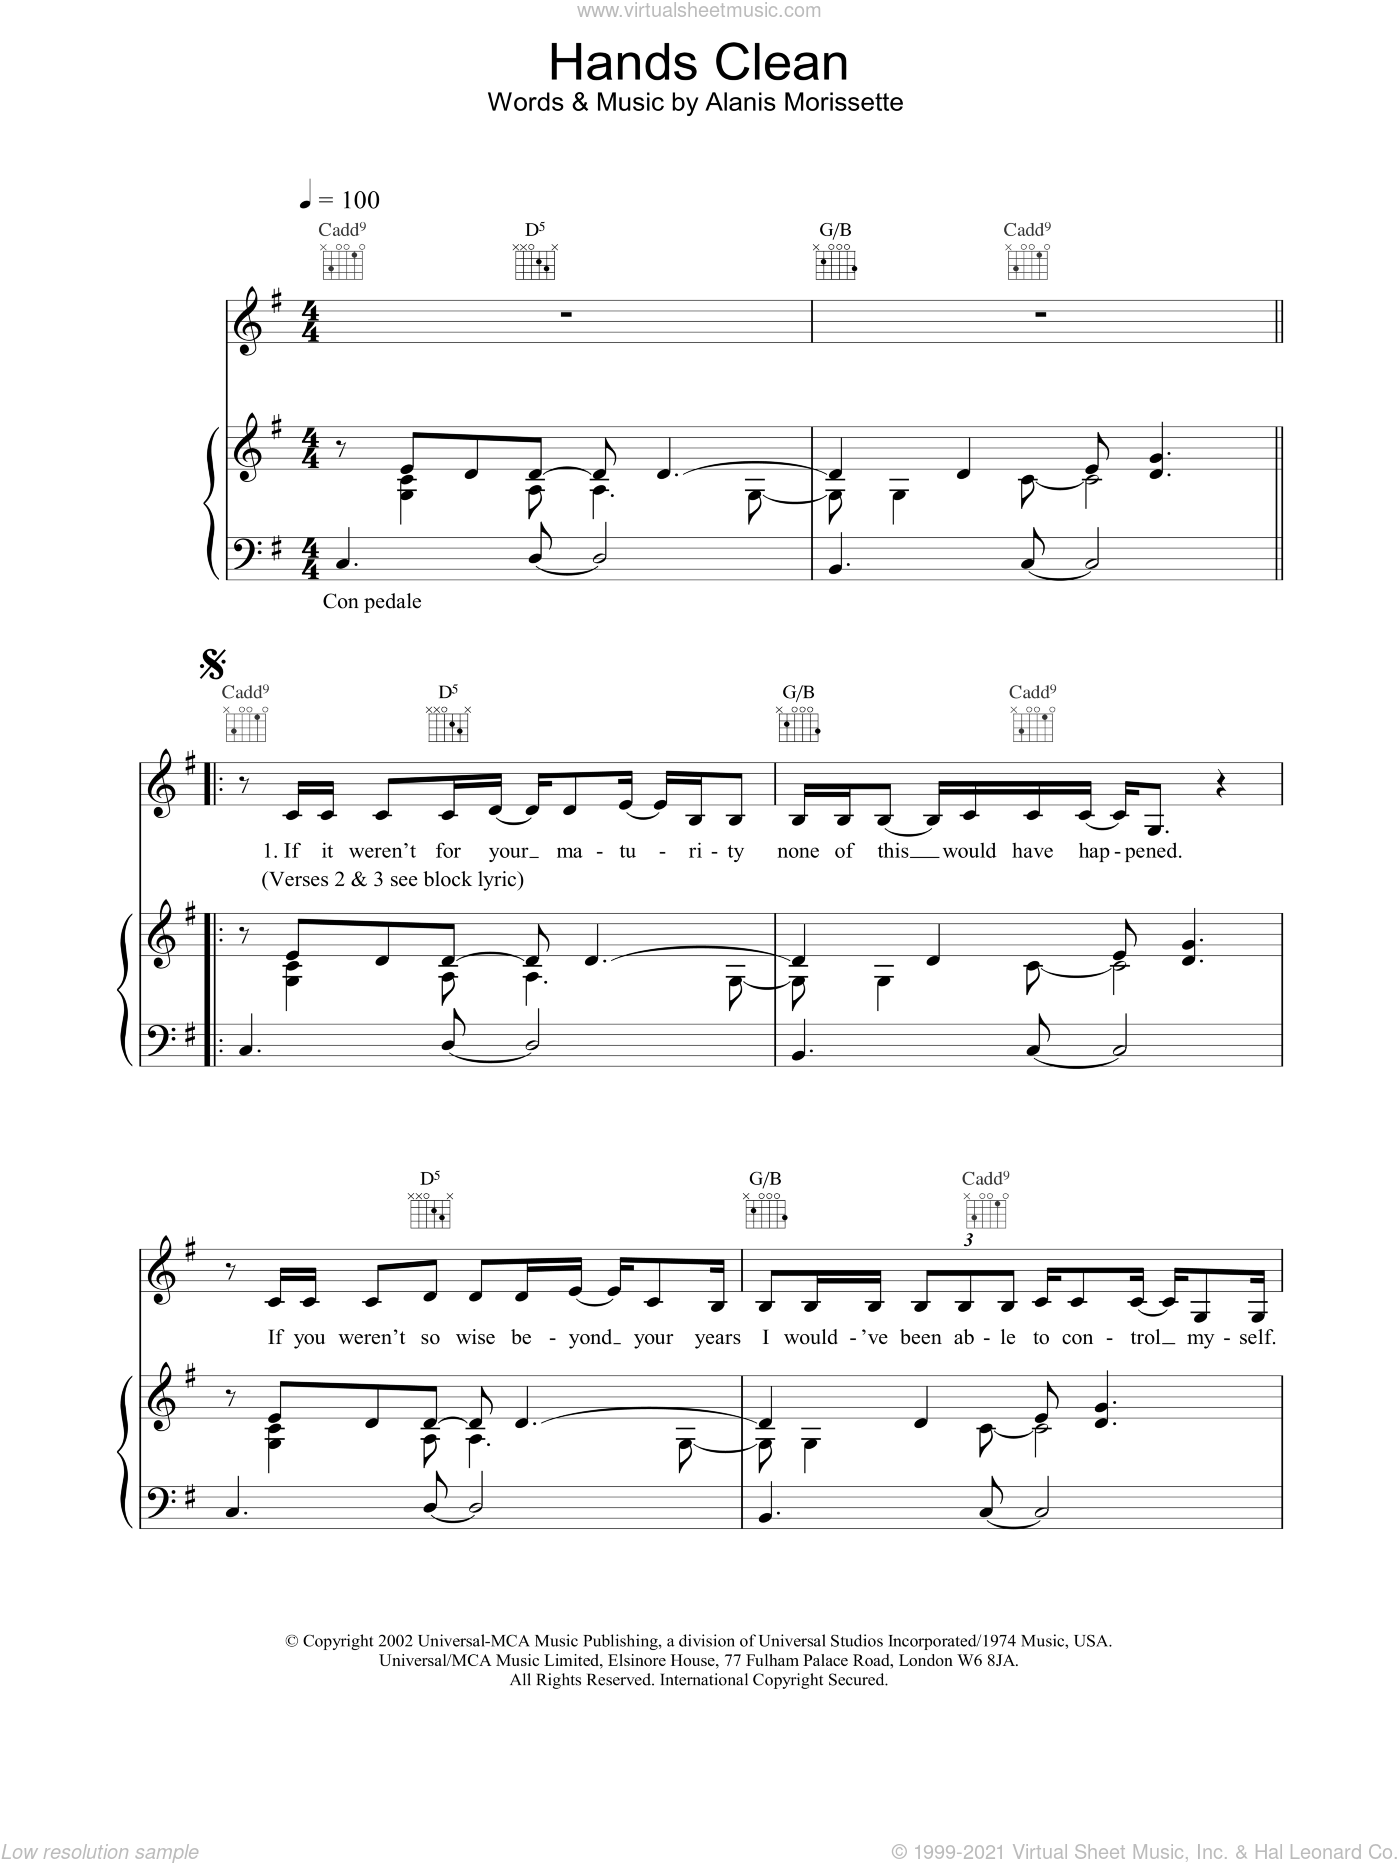 Hands Clean sheet music for voice, piano or guitar by Alanis Morissette